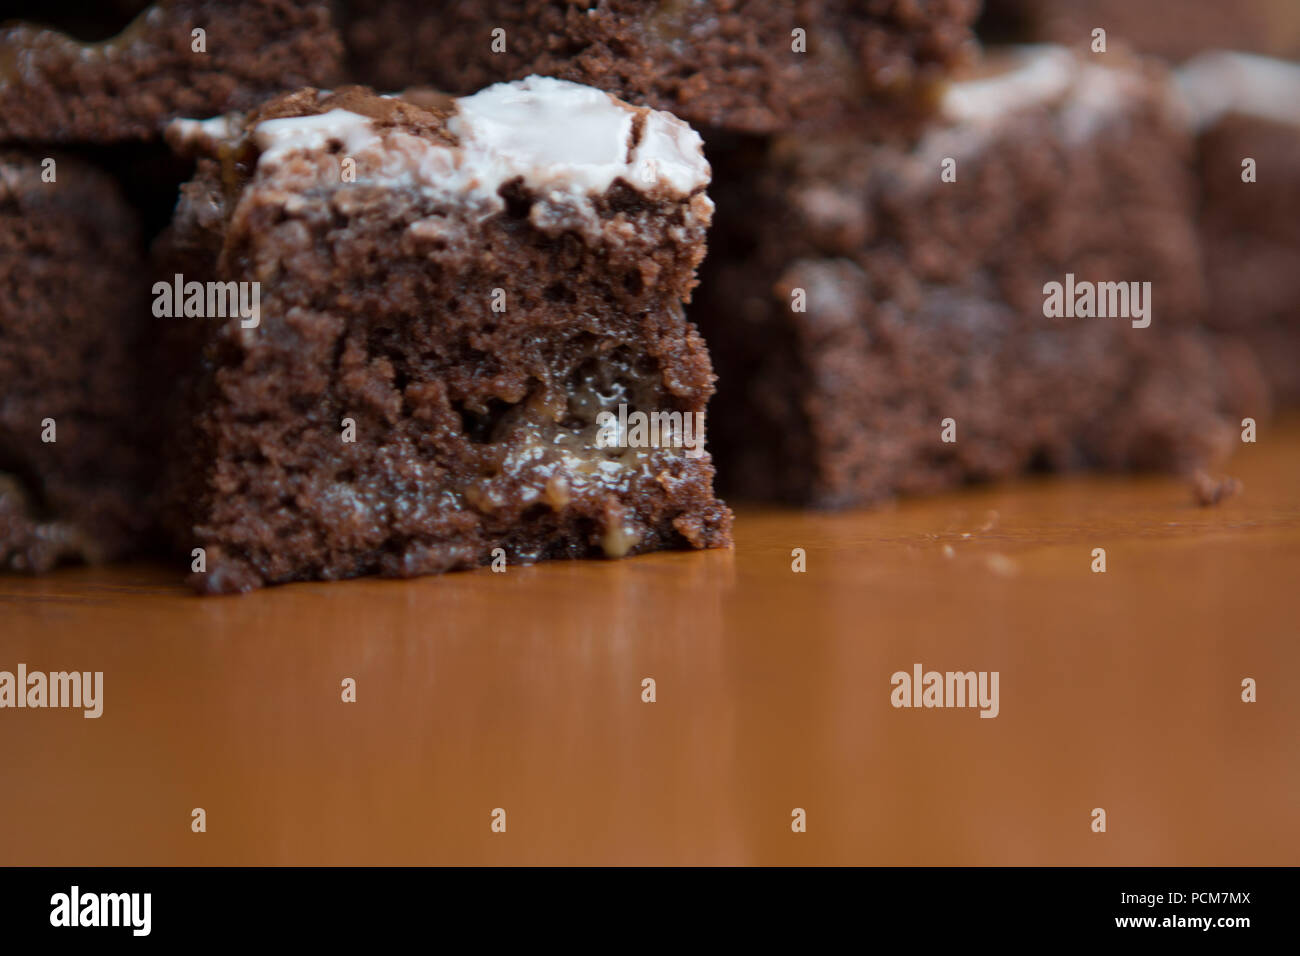 Salted caramel brownies - Stock Image